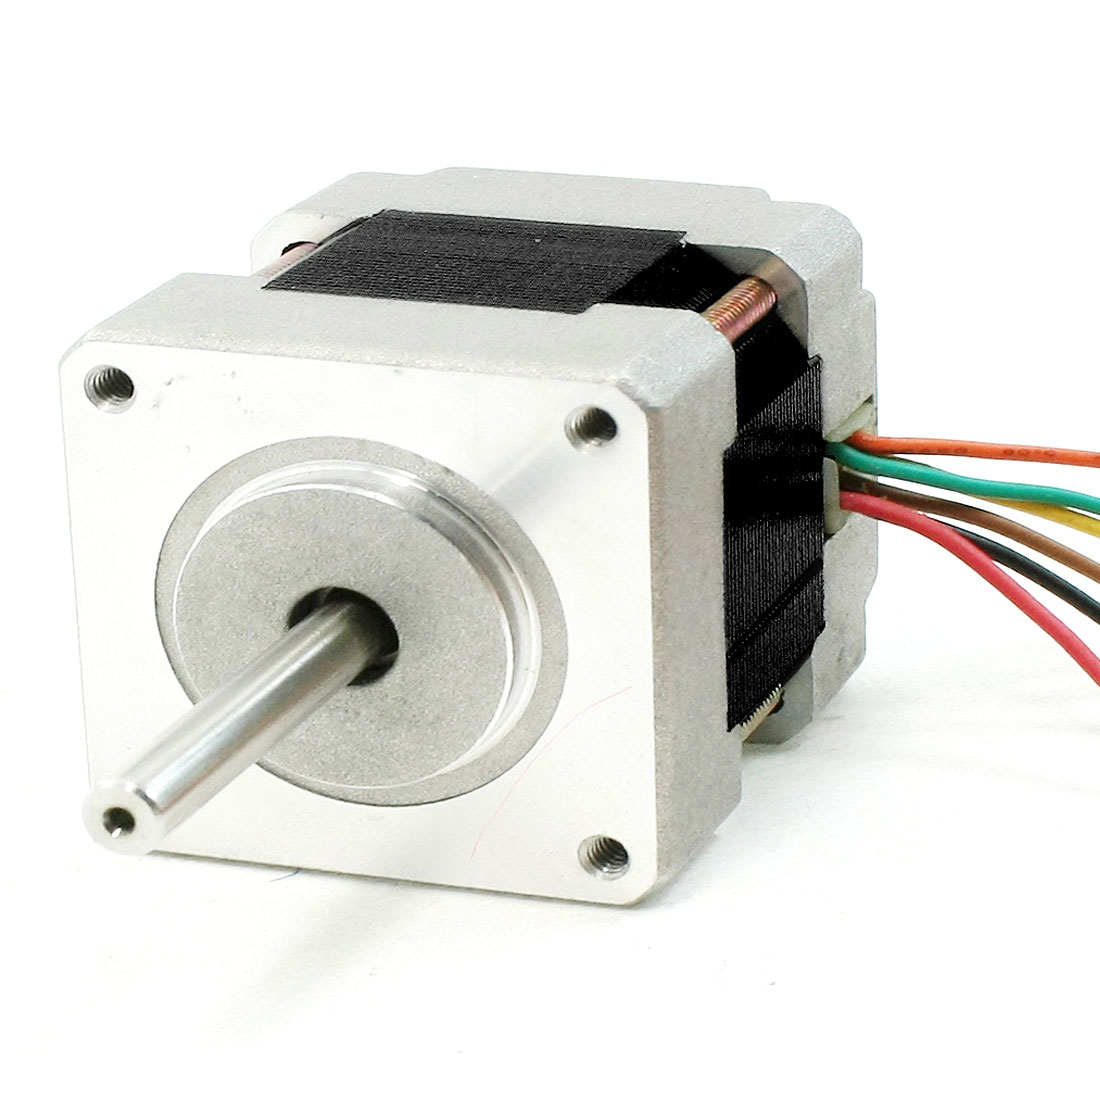 2 Phase 5mm Diameter Drive Shaft JQF39F34-01 Model Stepper Stepping Motor 0.6A